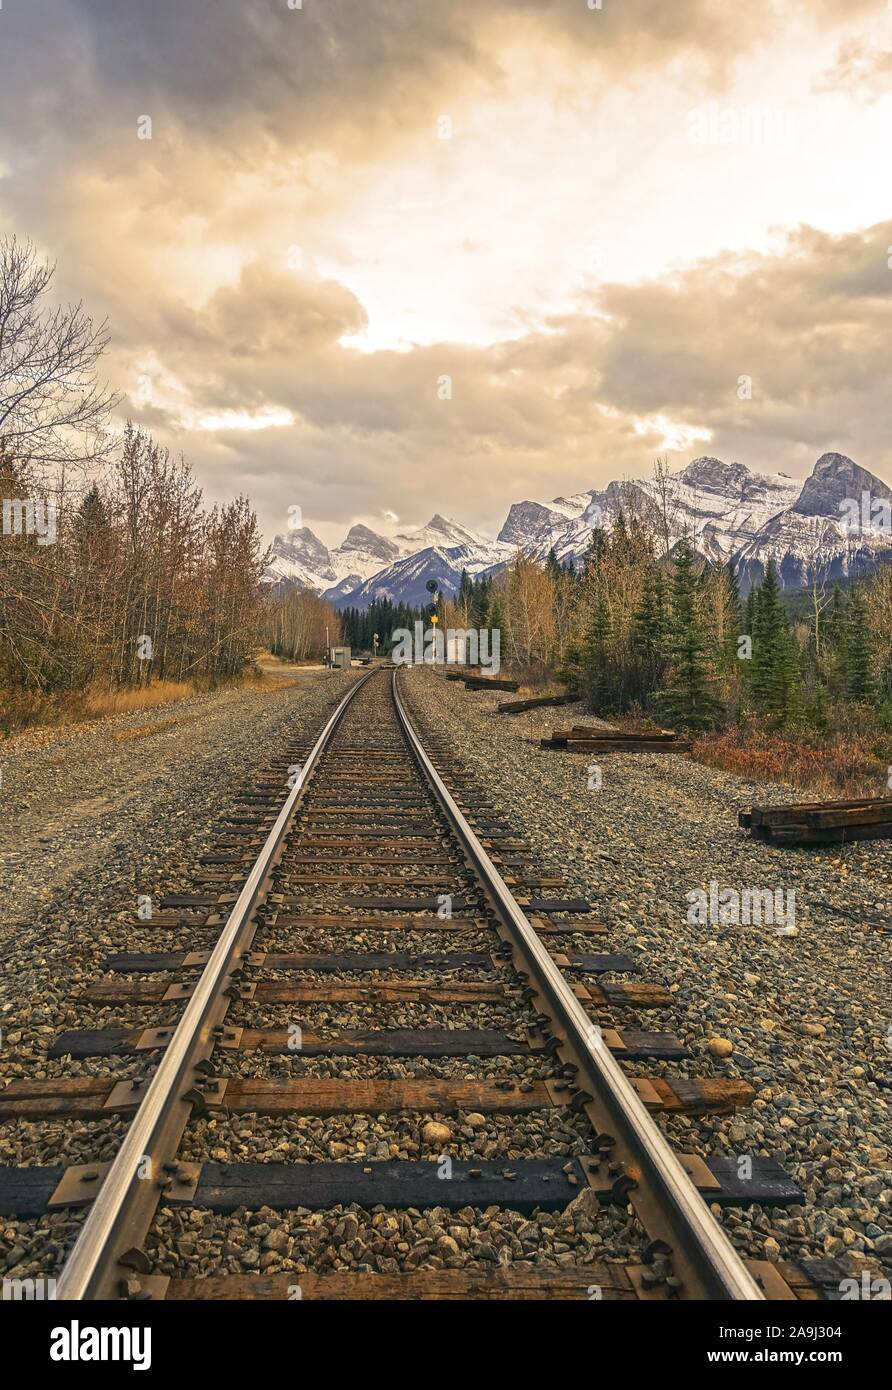 railway-line-and-distant-mountain-peaks-